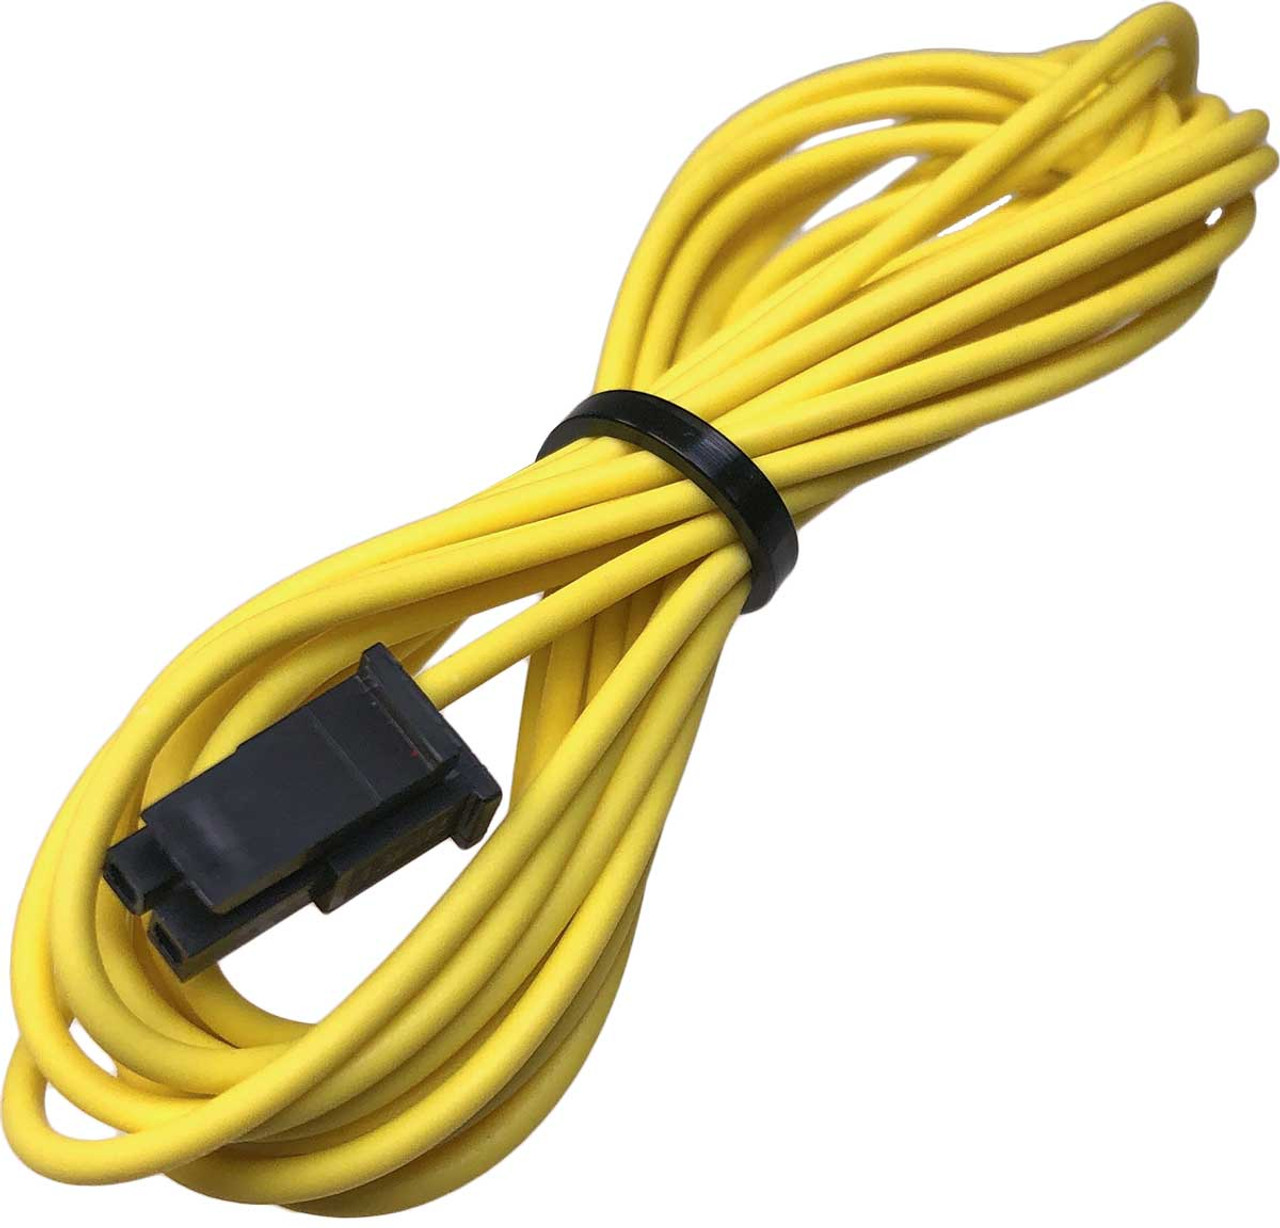 Tachometer Harness (8-foot) - for Triple Only